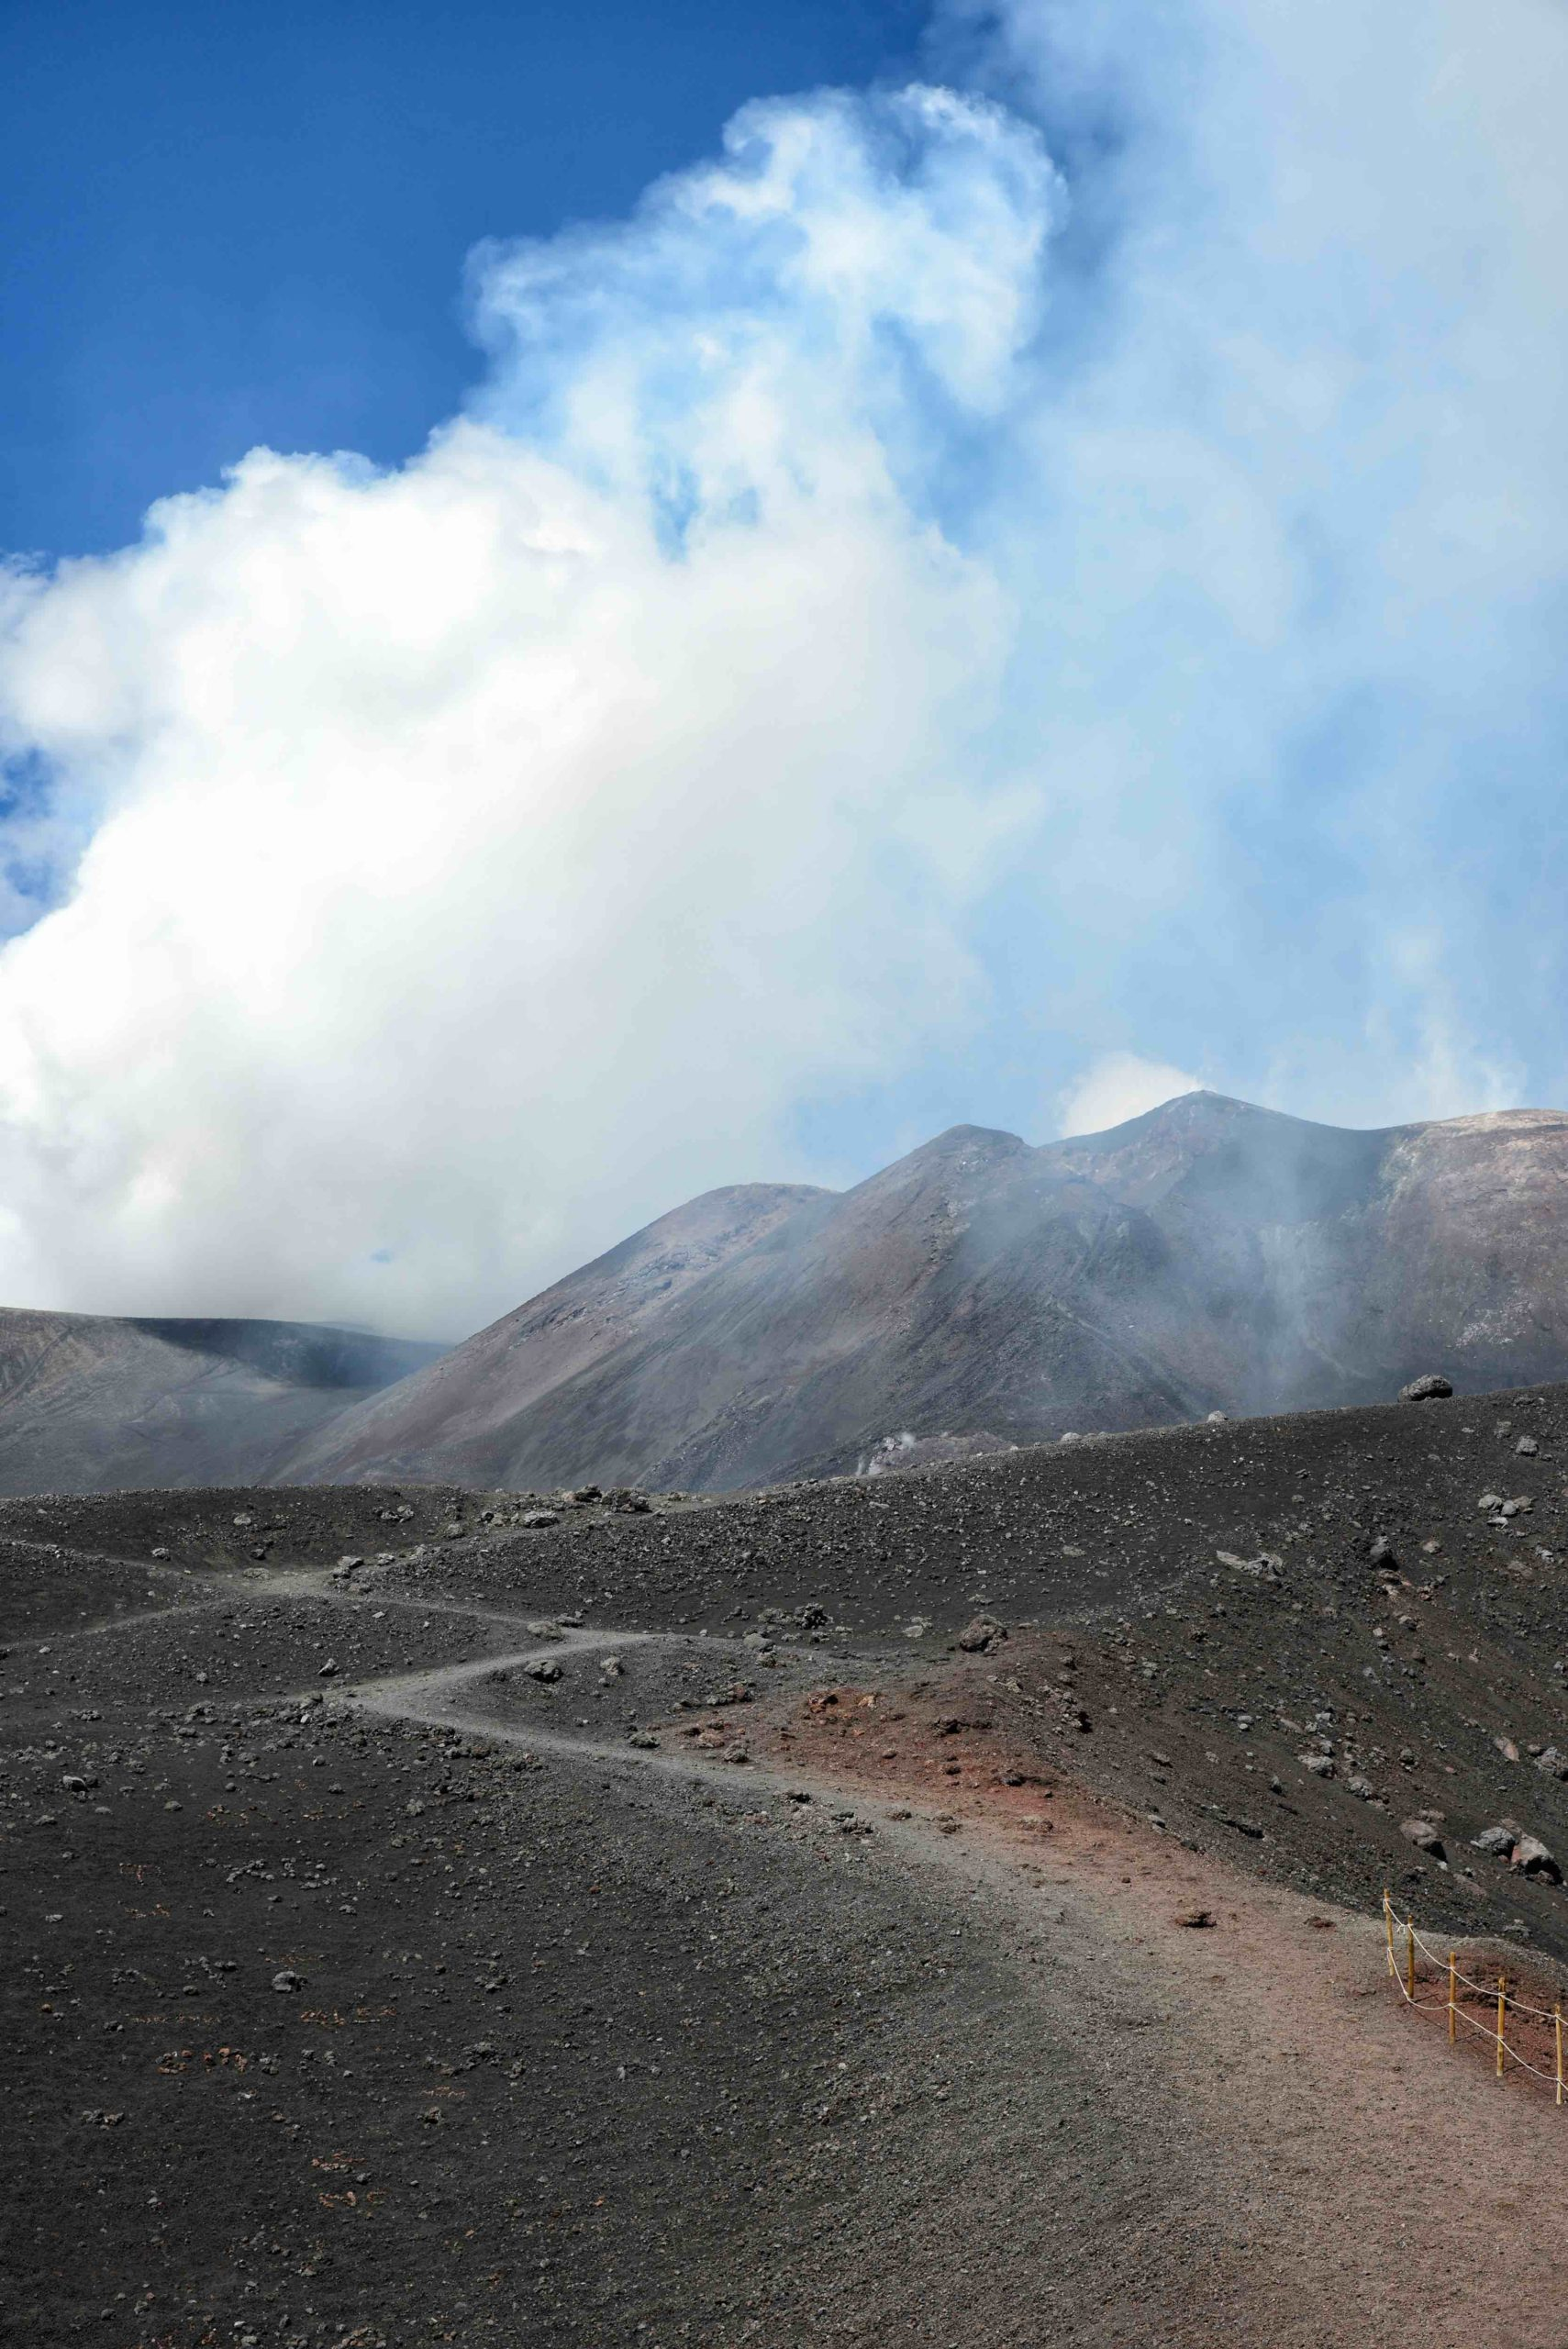 View of the slopes of Mount Etna at the island Sicily, Italy